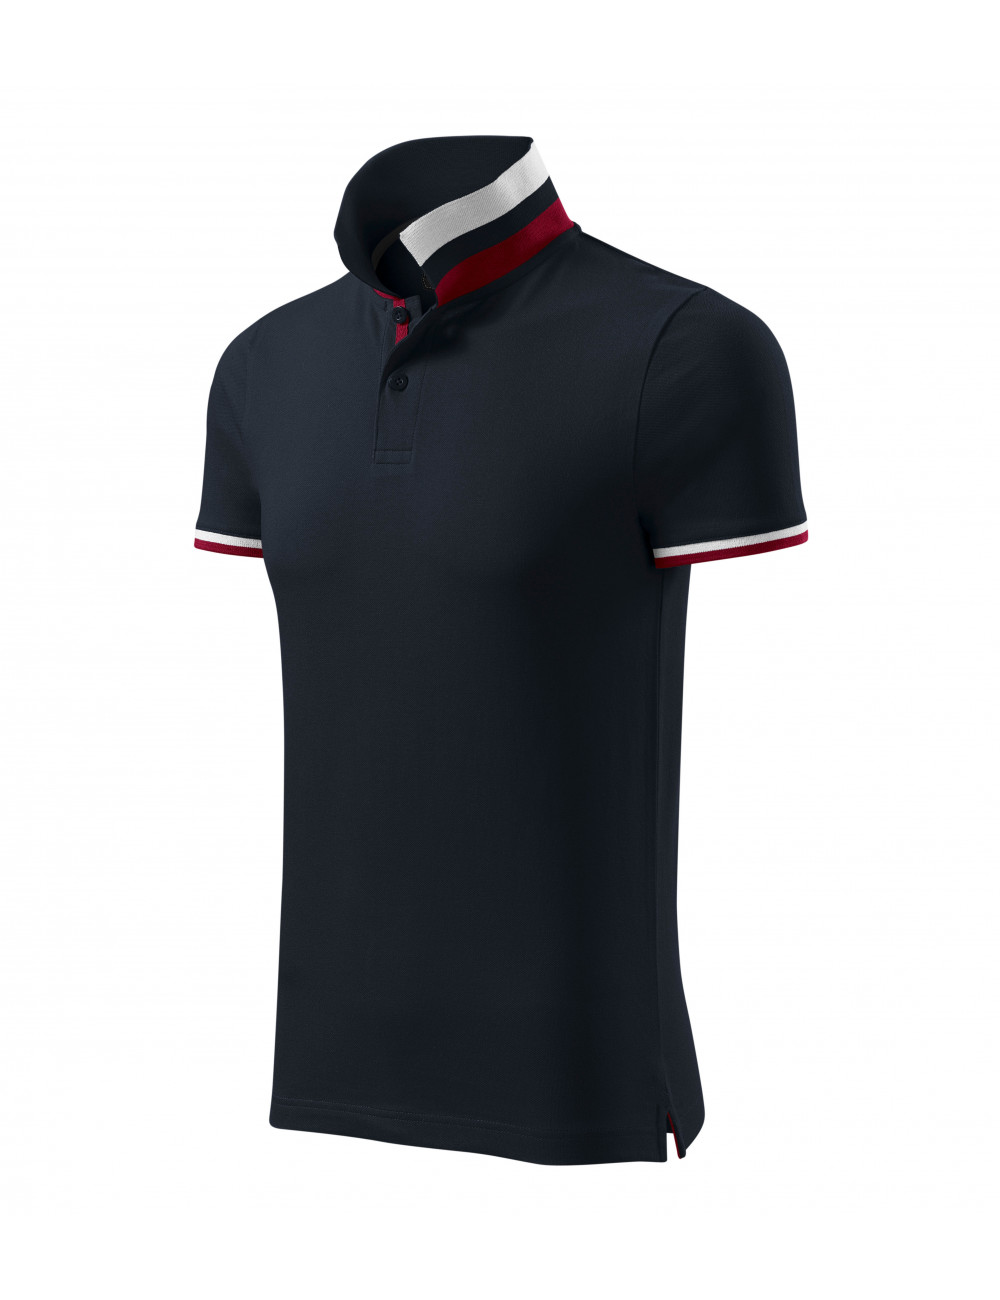 Adler MALFINIPREMIUM Koszulka polo męska Collar Up 256 dark navy